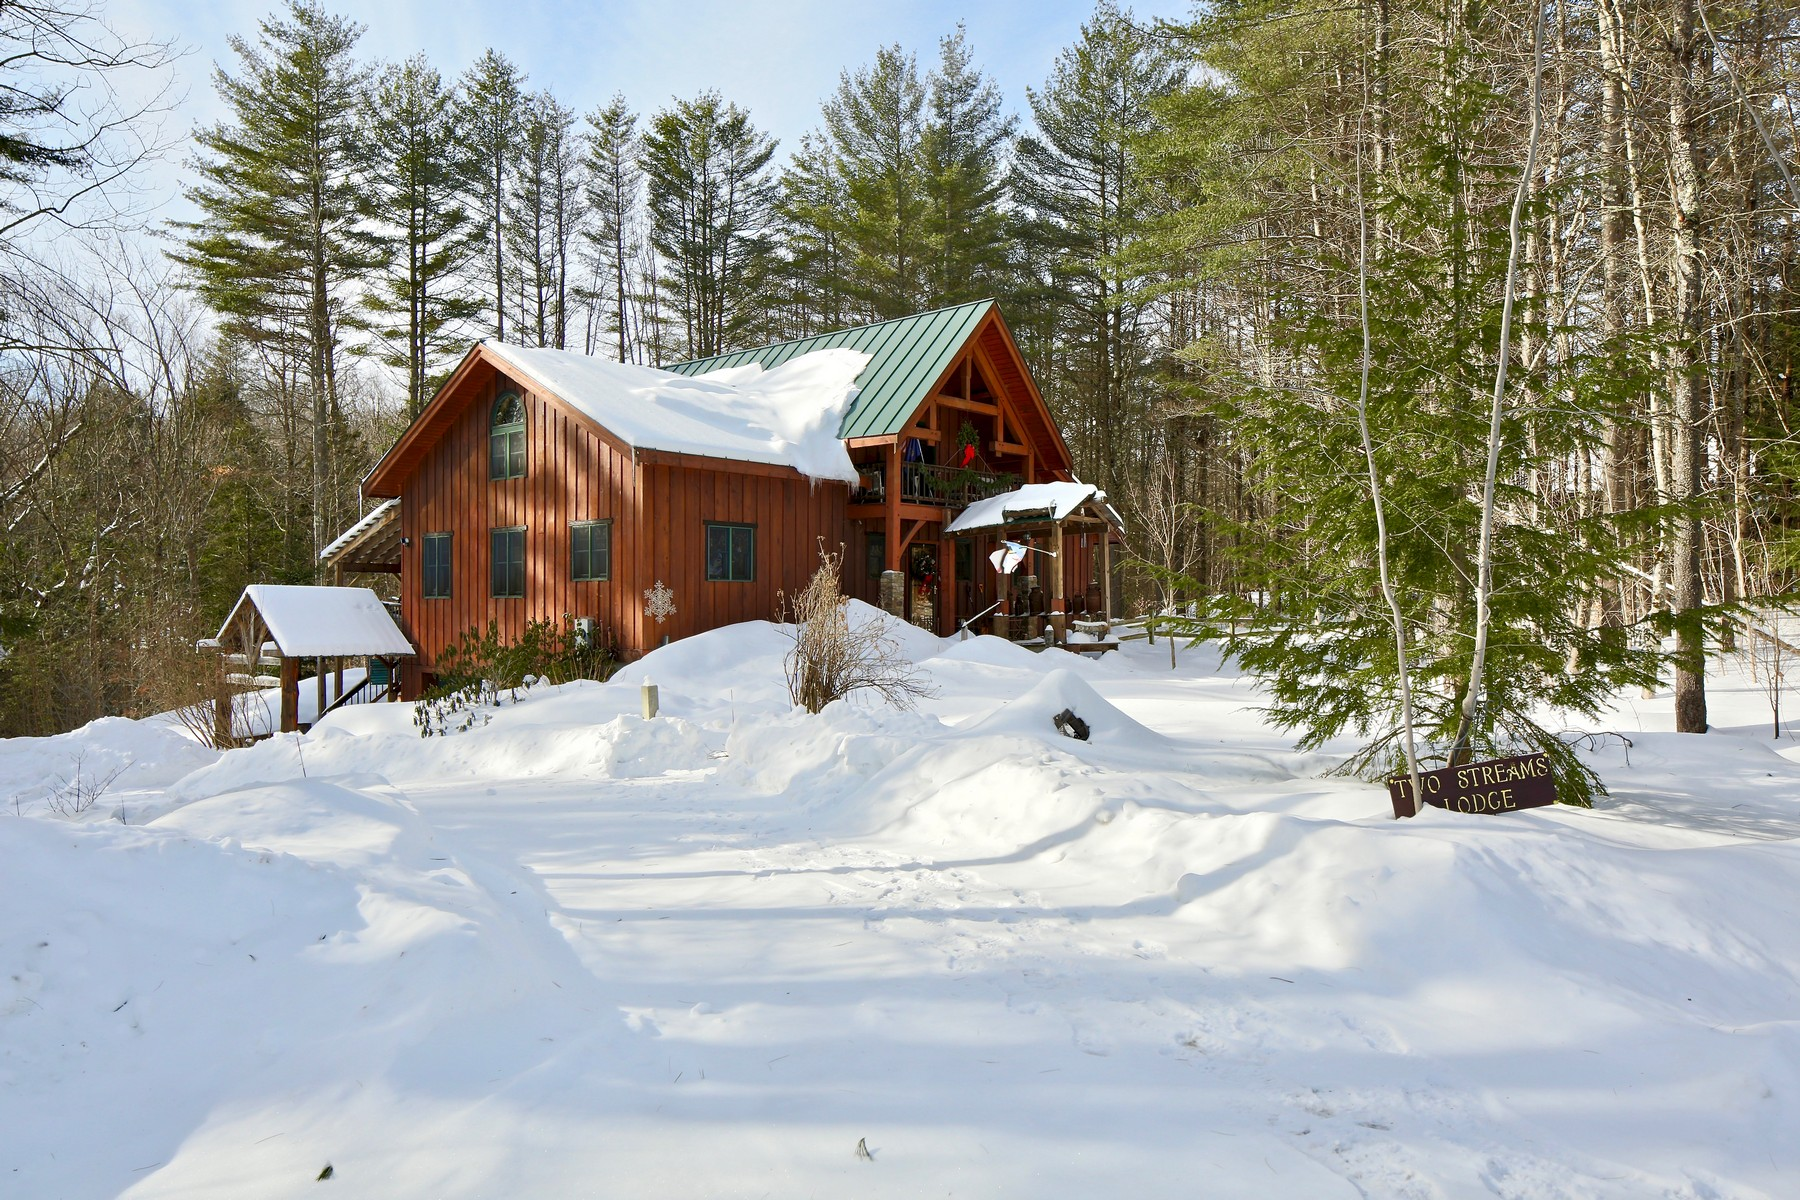 Single Family Home for Sale at Cedarbuilt Timberframe on 10 Acres 693 Chapman Rd Ludlow, Vermont 05149 United States